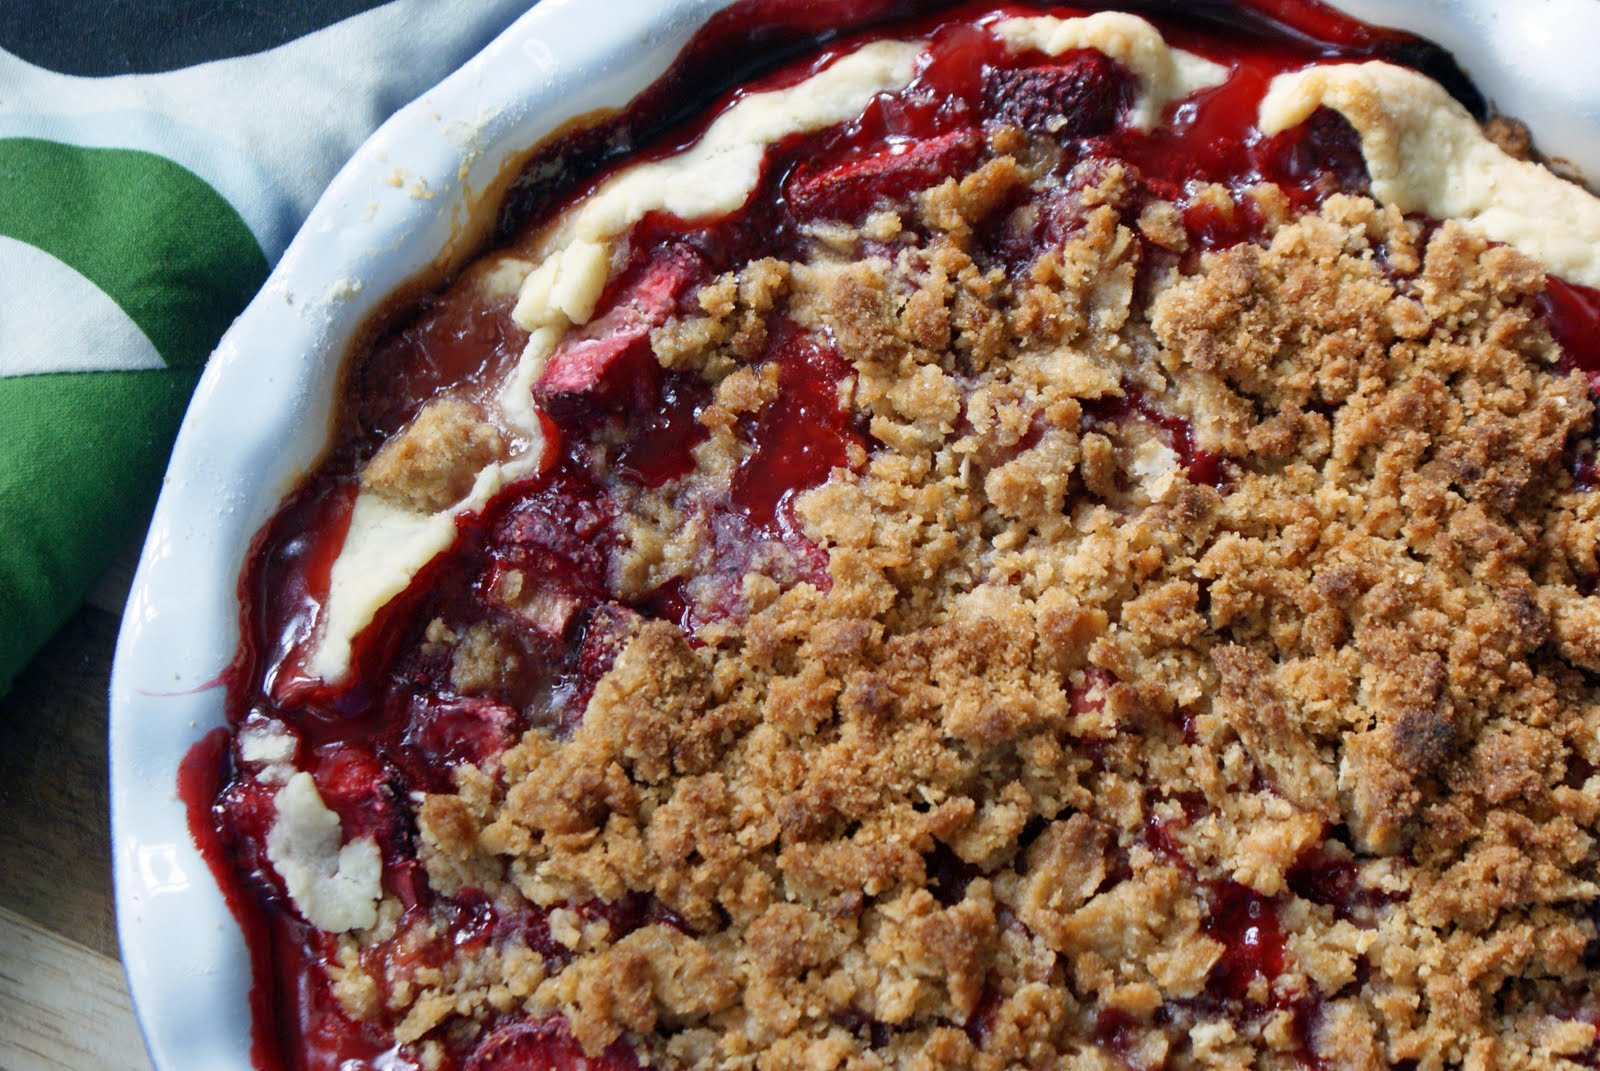 Strawberry Rhubarb Pie with Sour Cream Ice Cream - Dinner With Julie